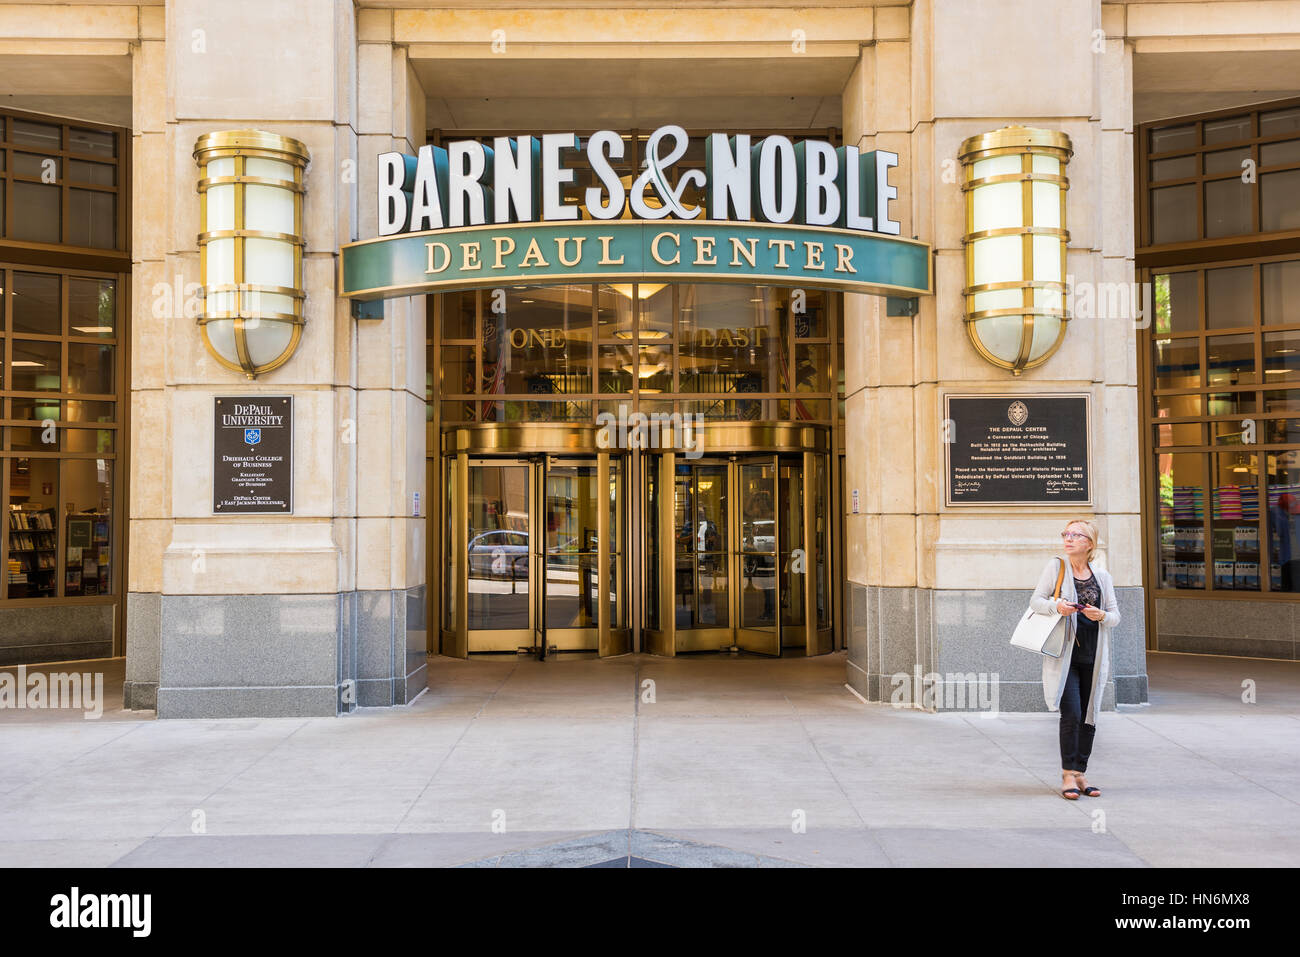 Barnes And Noble Store Stock Photos & Barnes And Noble Store Stock ...